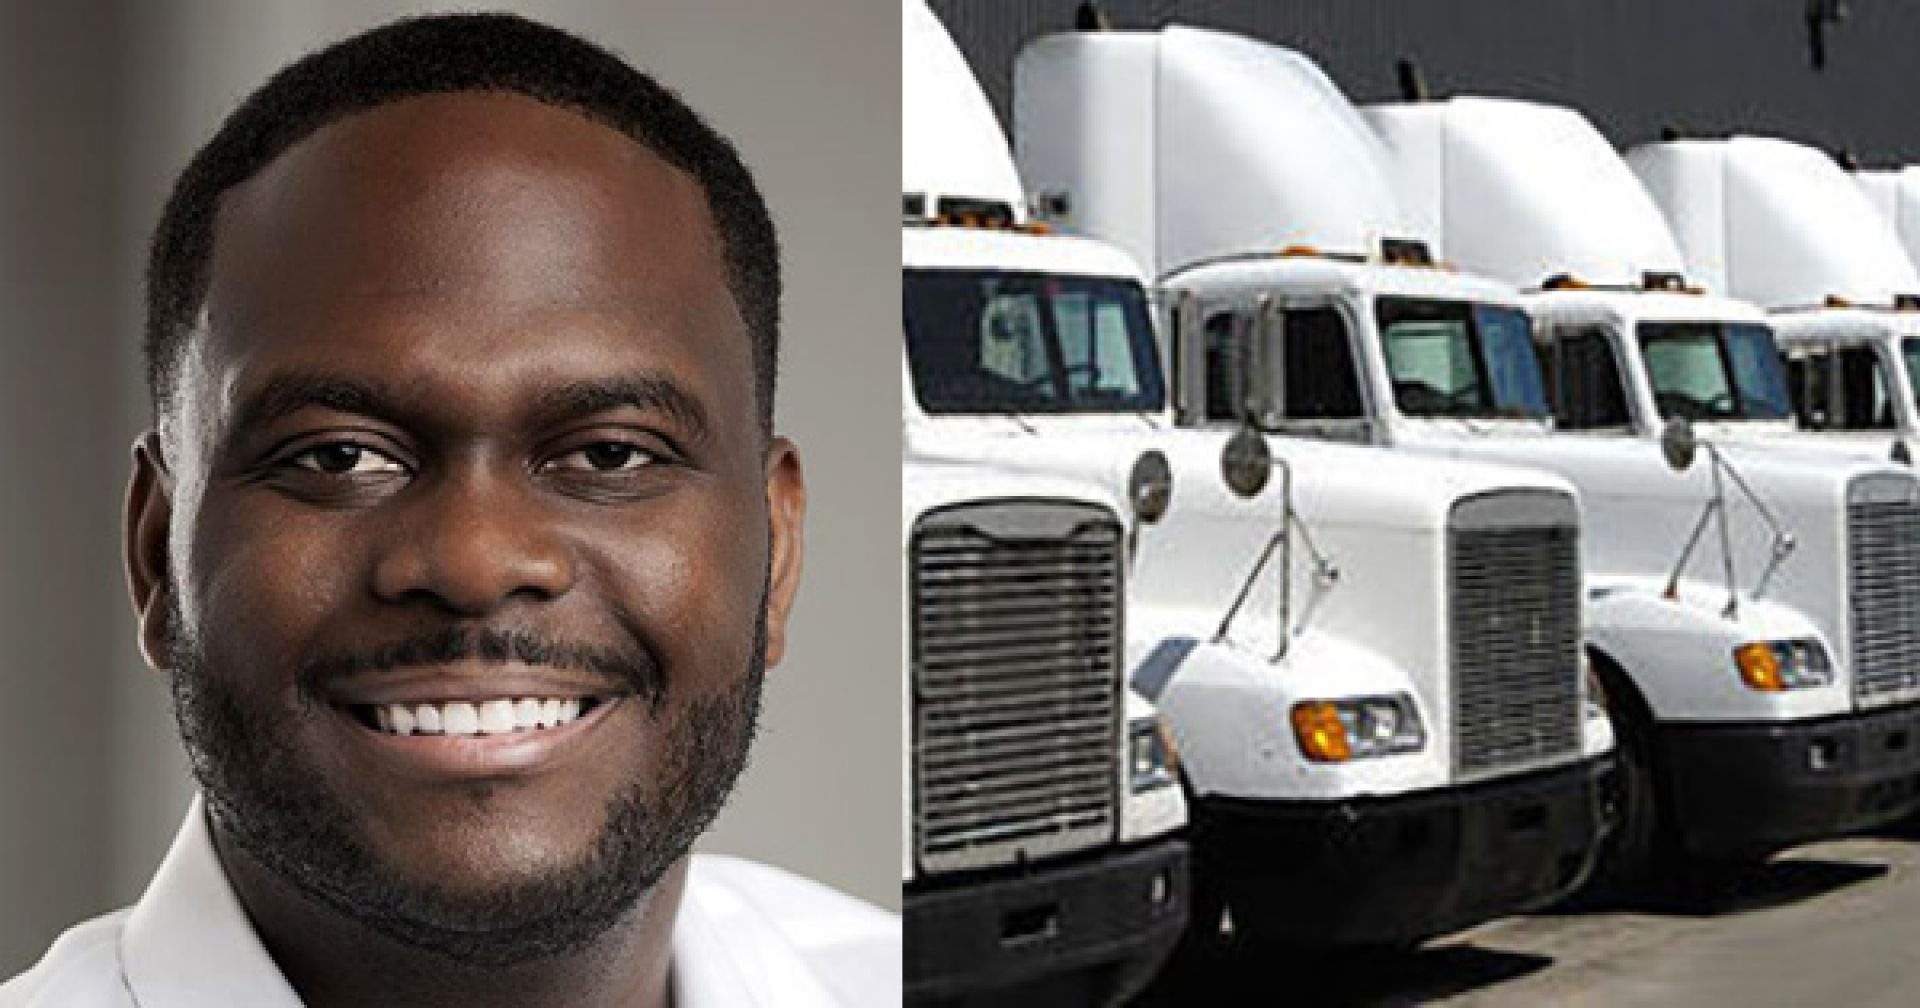 He Was Homeless, Now His Trucking Company Does Millions